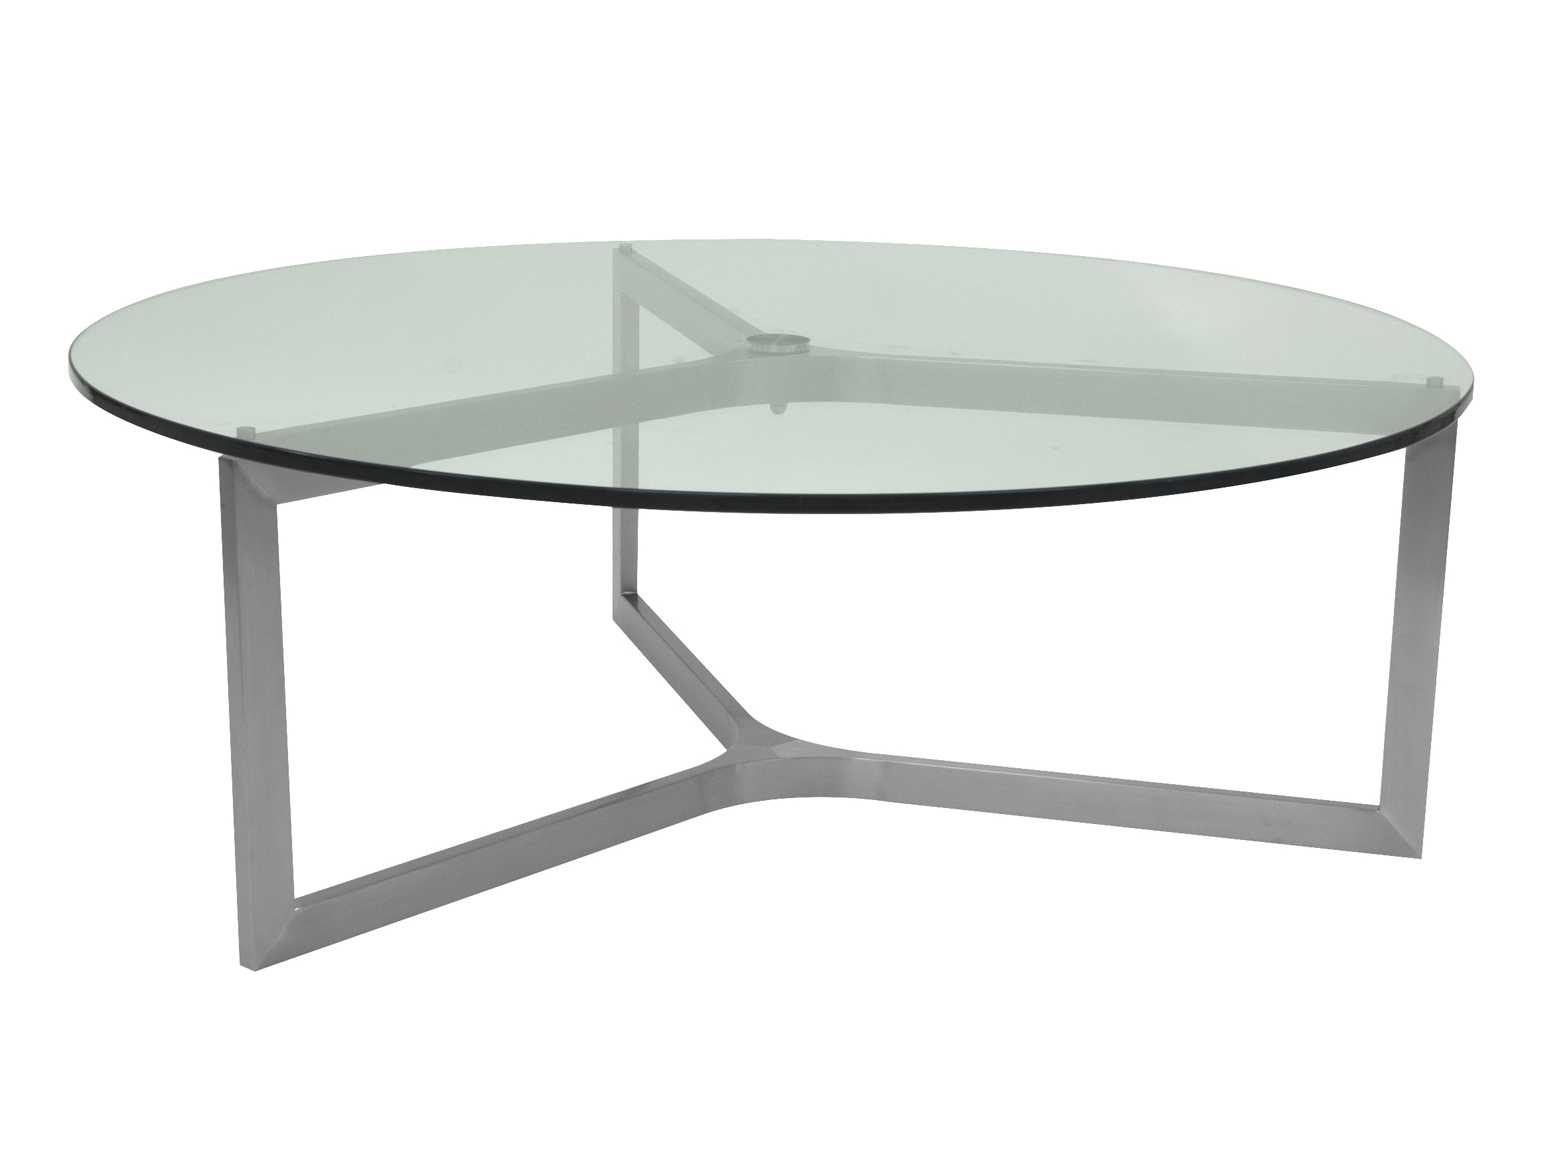 Allan copley designs adrienne 43 round clear coffee table for Adrienne chaise lounge